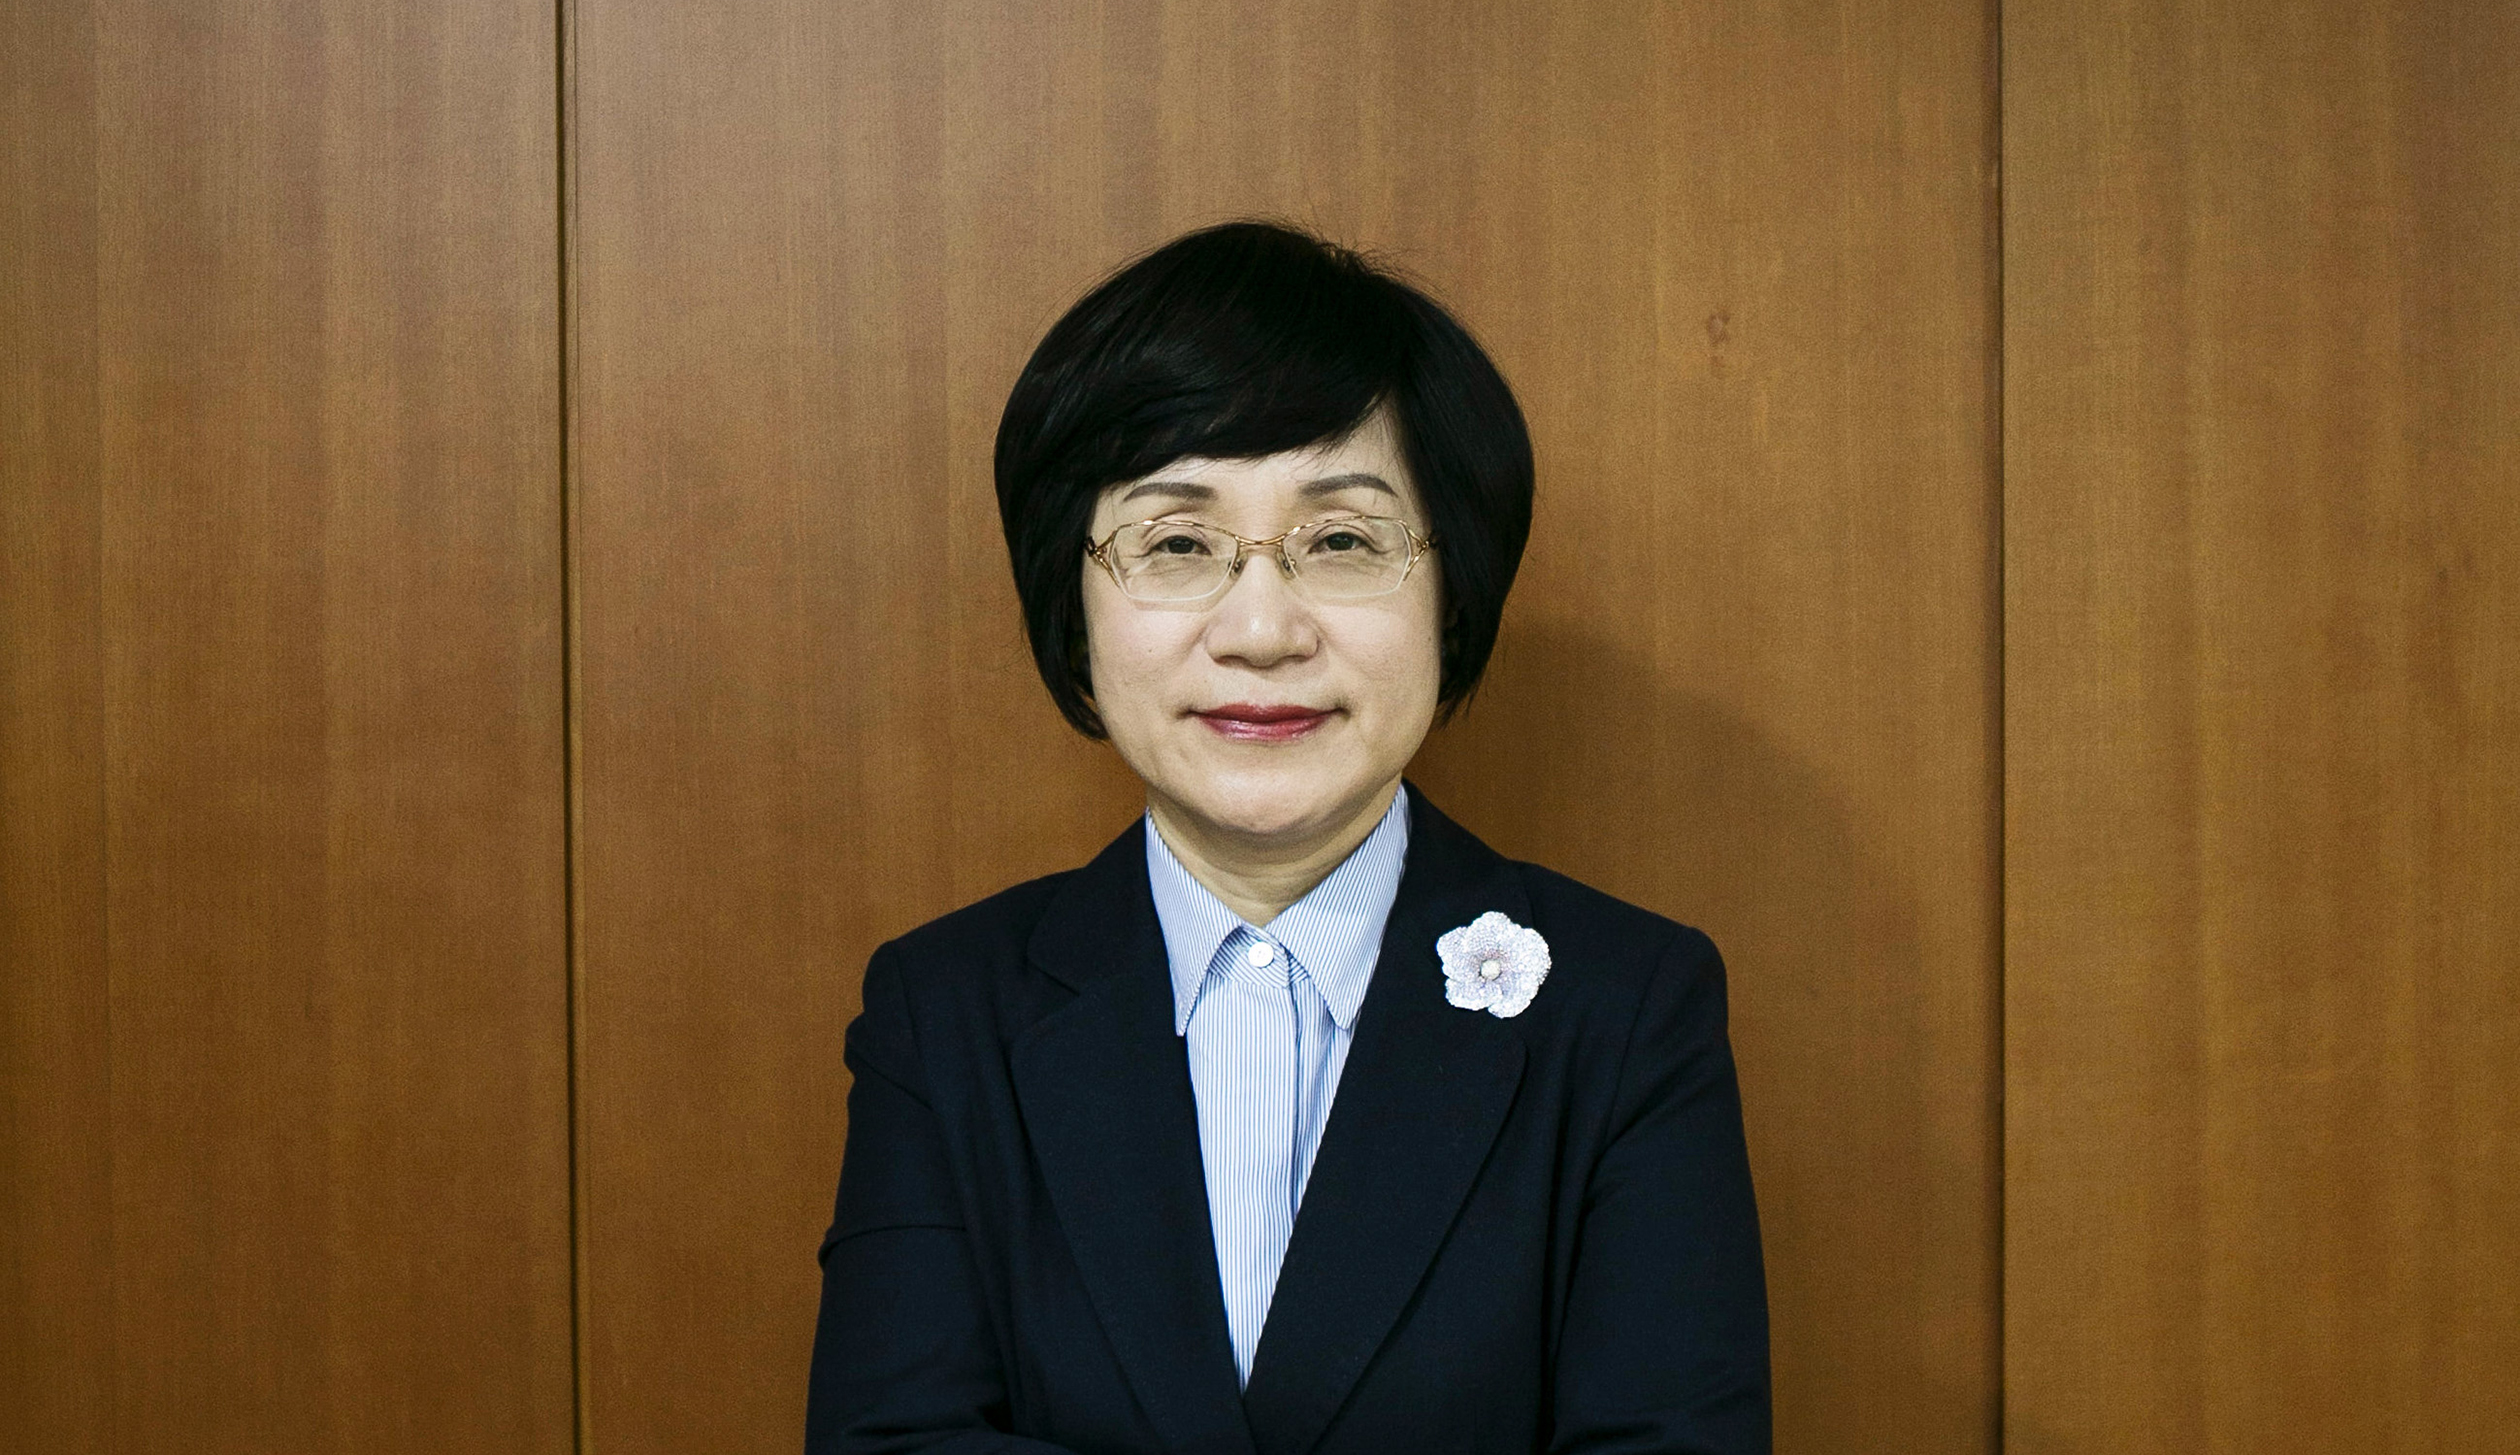 Industrial Bank Of Korea CEO Kwon Seon Joo Interview